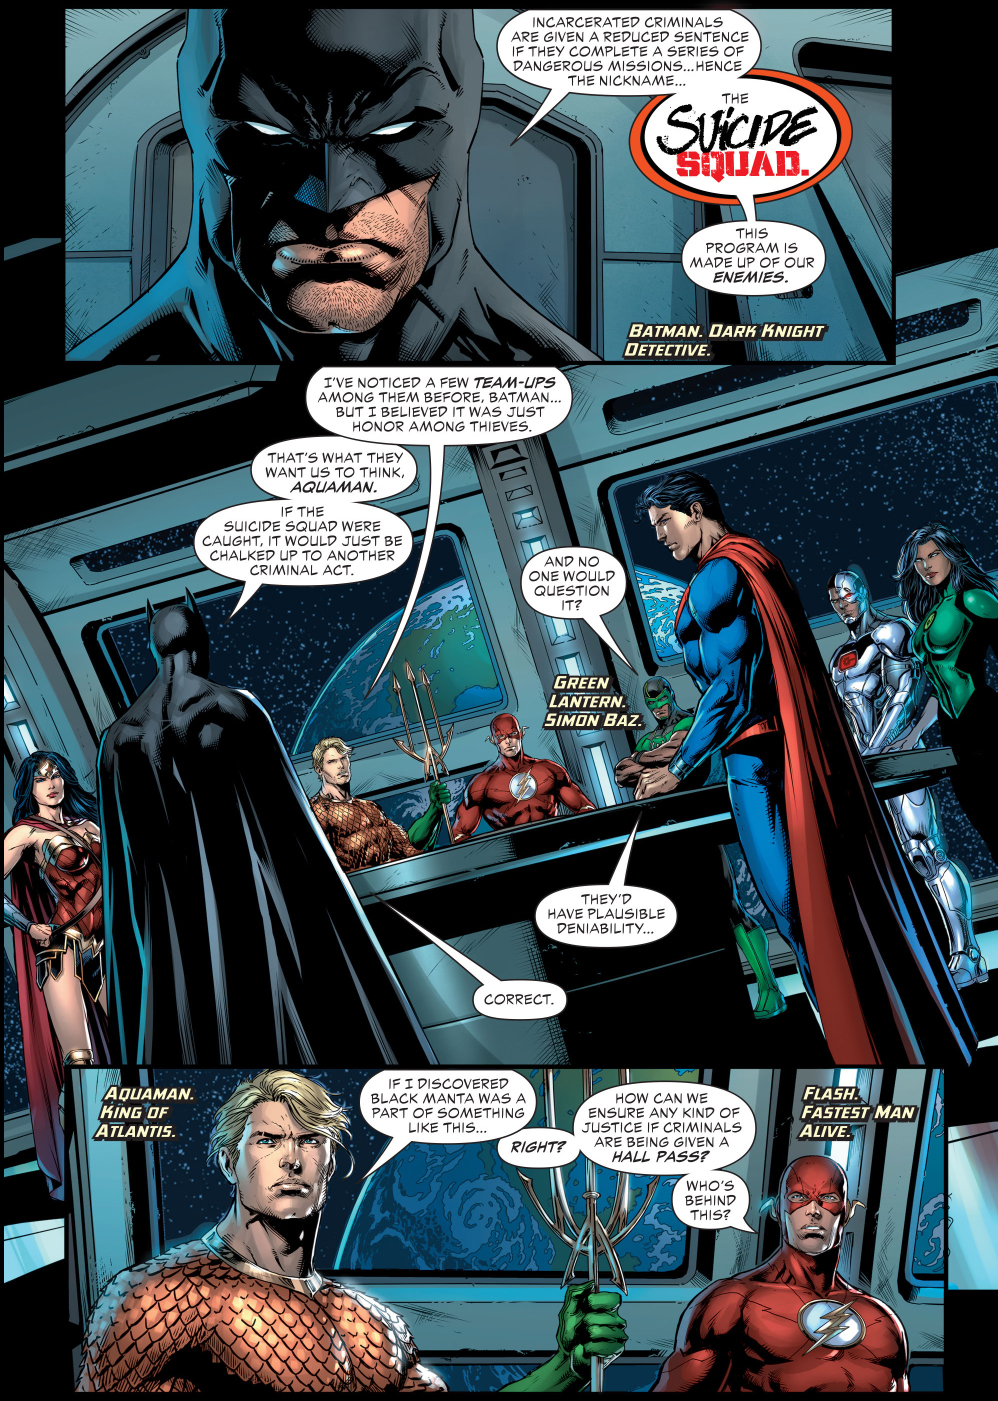 why-the-justice-league-disapproves-of-the-suicide-squad